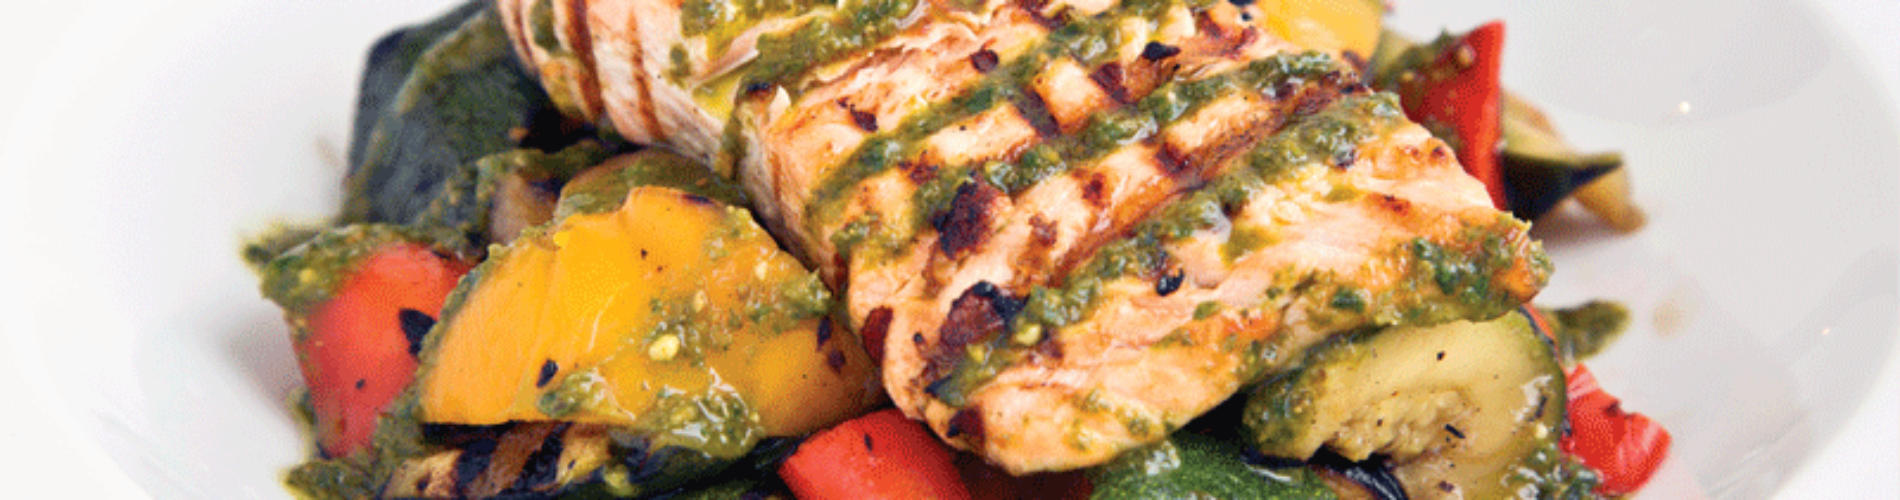 Salmon Pesto with Roasted Vegetables